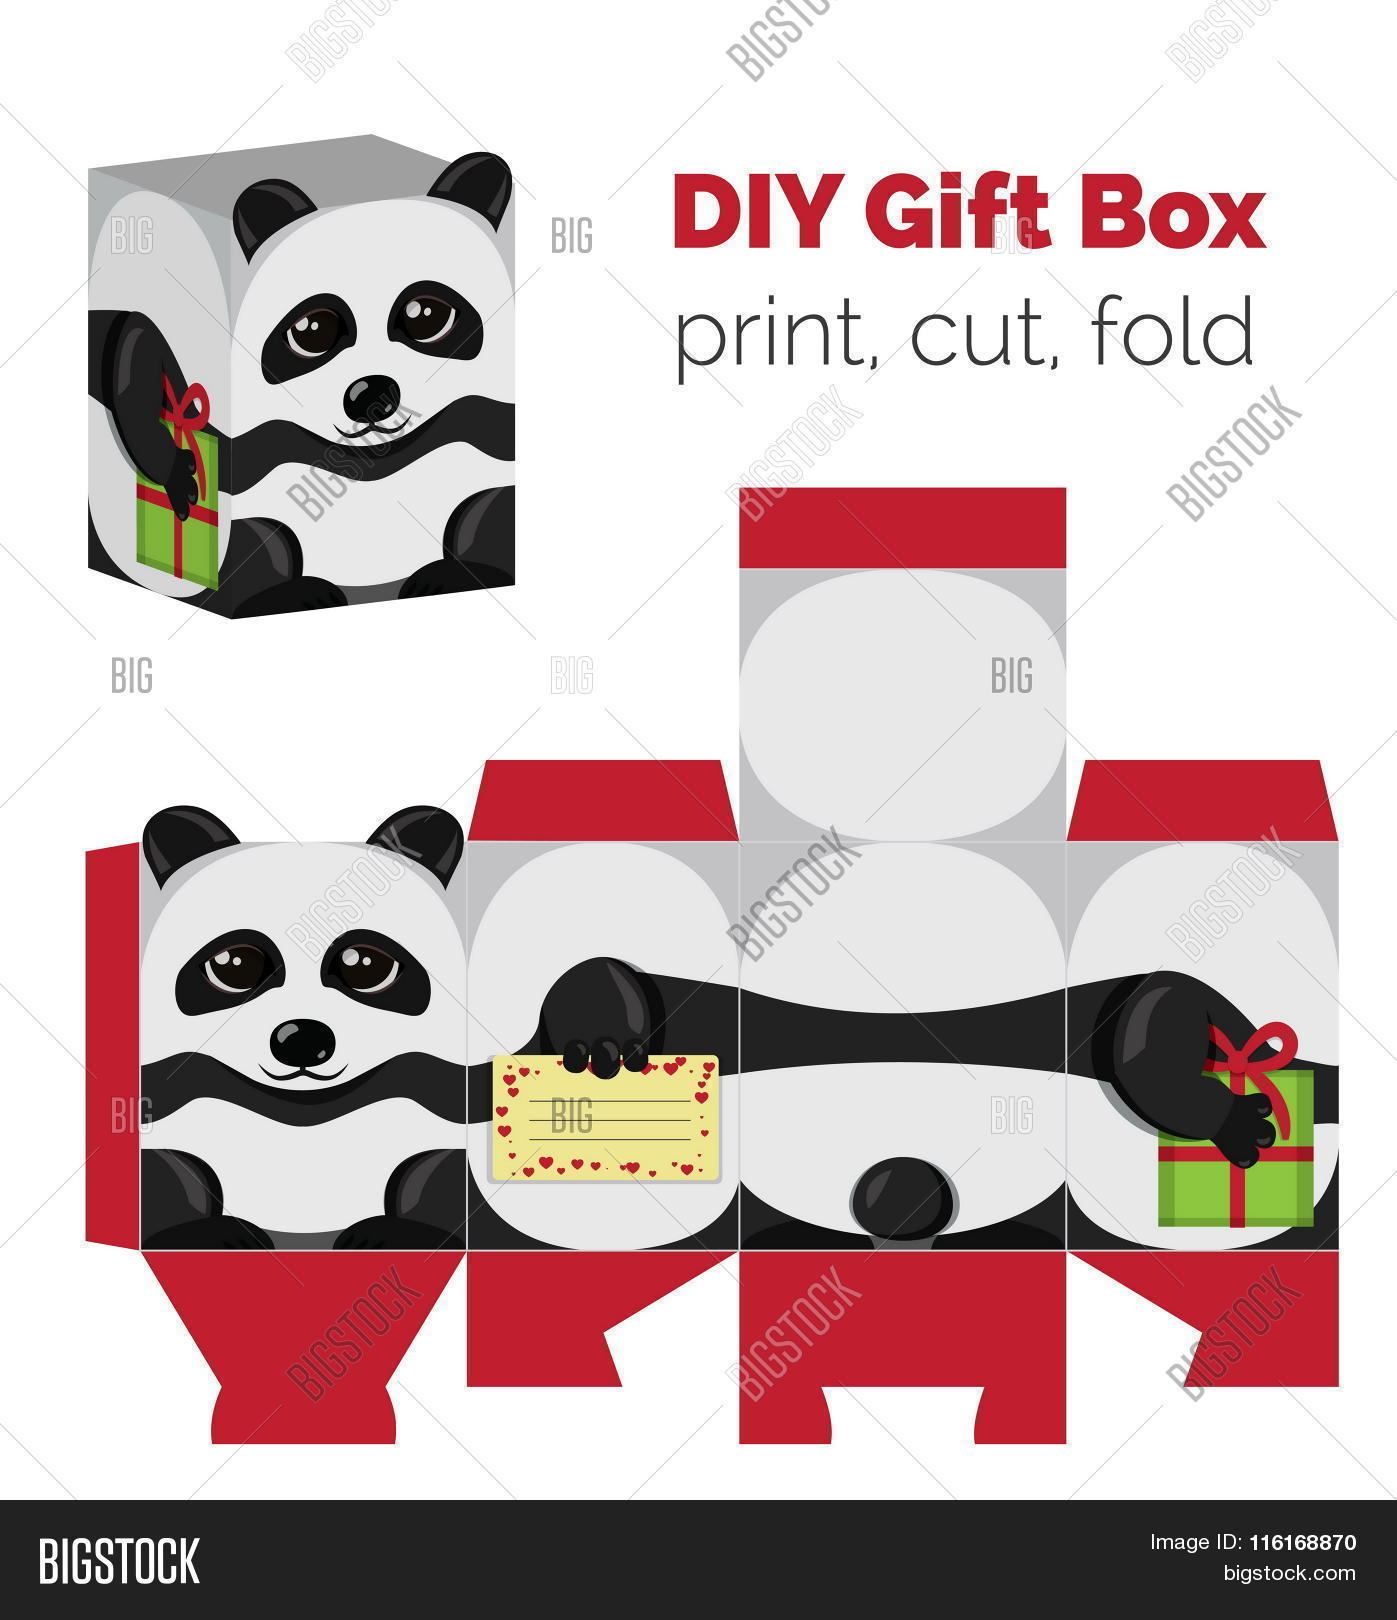 Adorable do yourself vector photo free trial bigstock adorable do it yourself diy panda gift box with ears for sweets candies small solutioingenieria Image collections